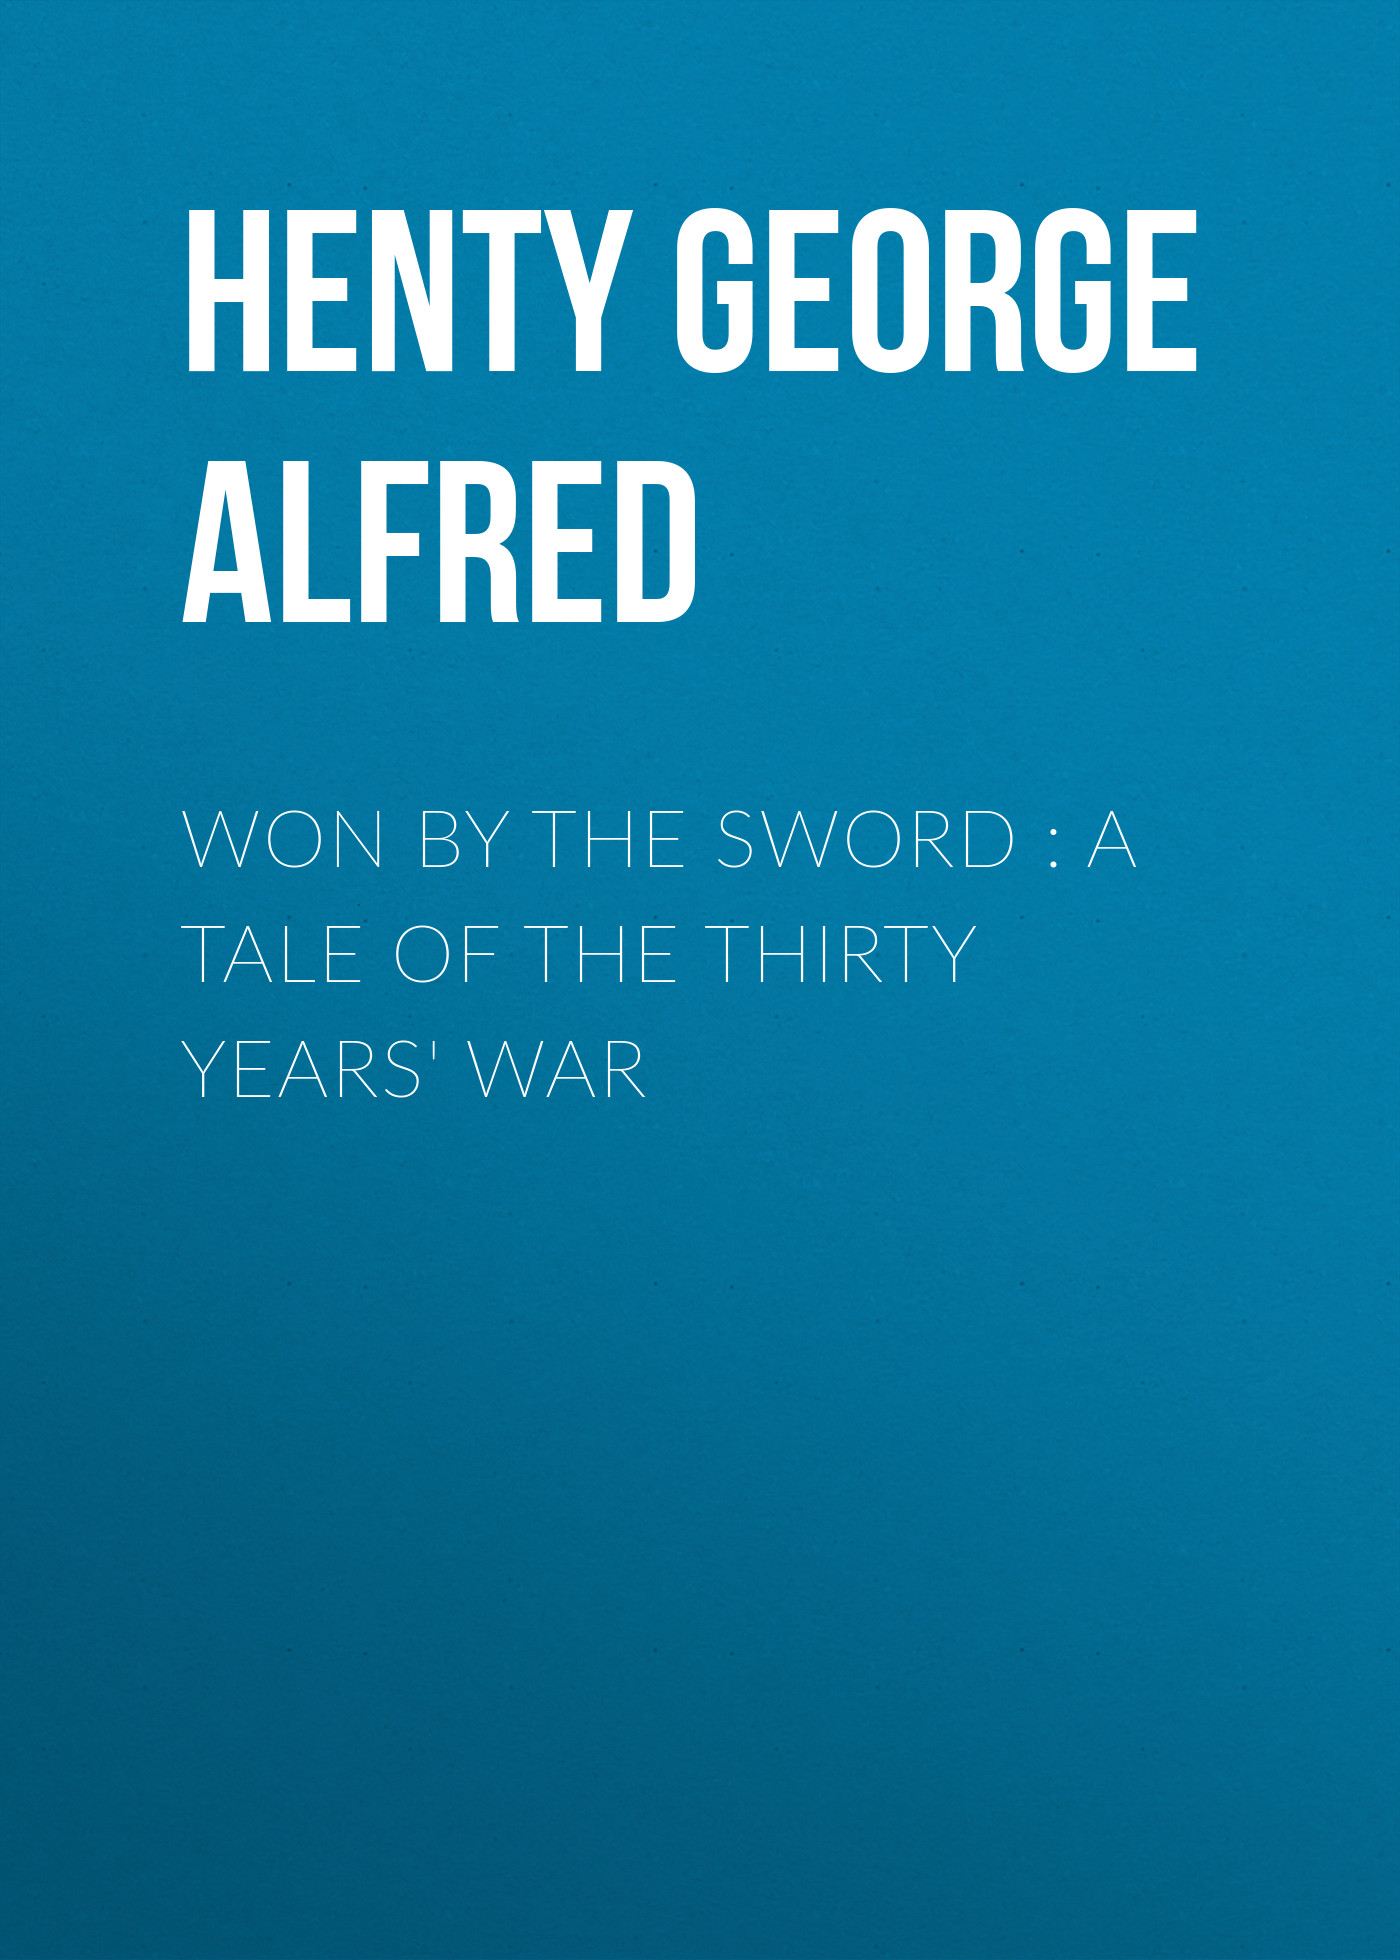 Henty George Alfred Won By the Sword : a tale of the Thirty Years' War neil williamson elaine gallagher cameron johnston thirty years of rain